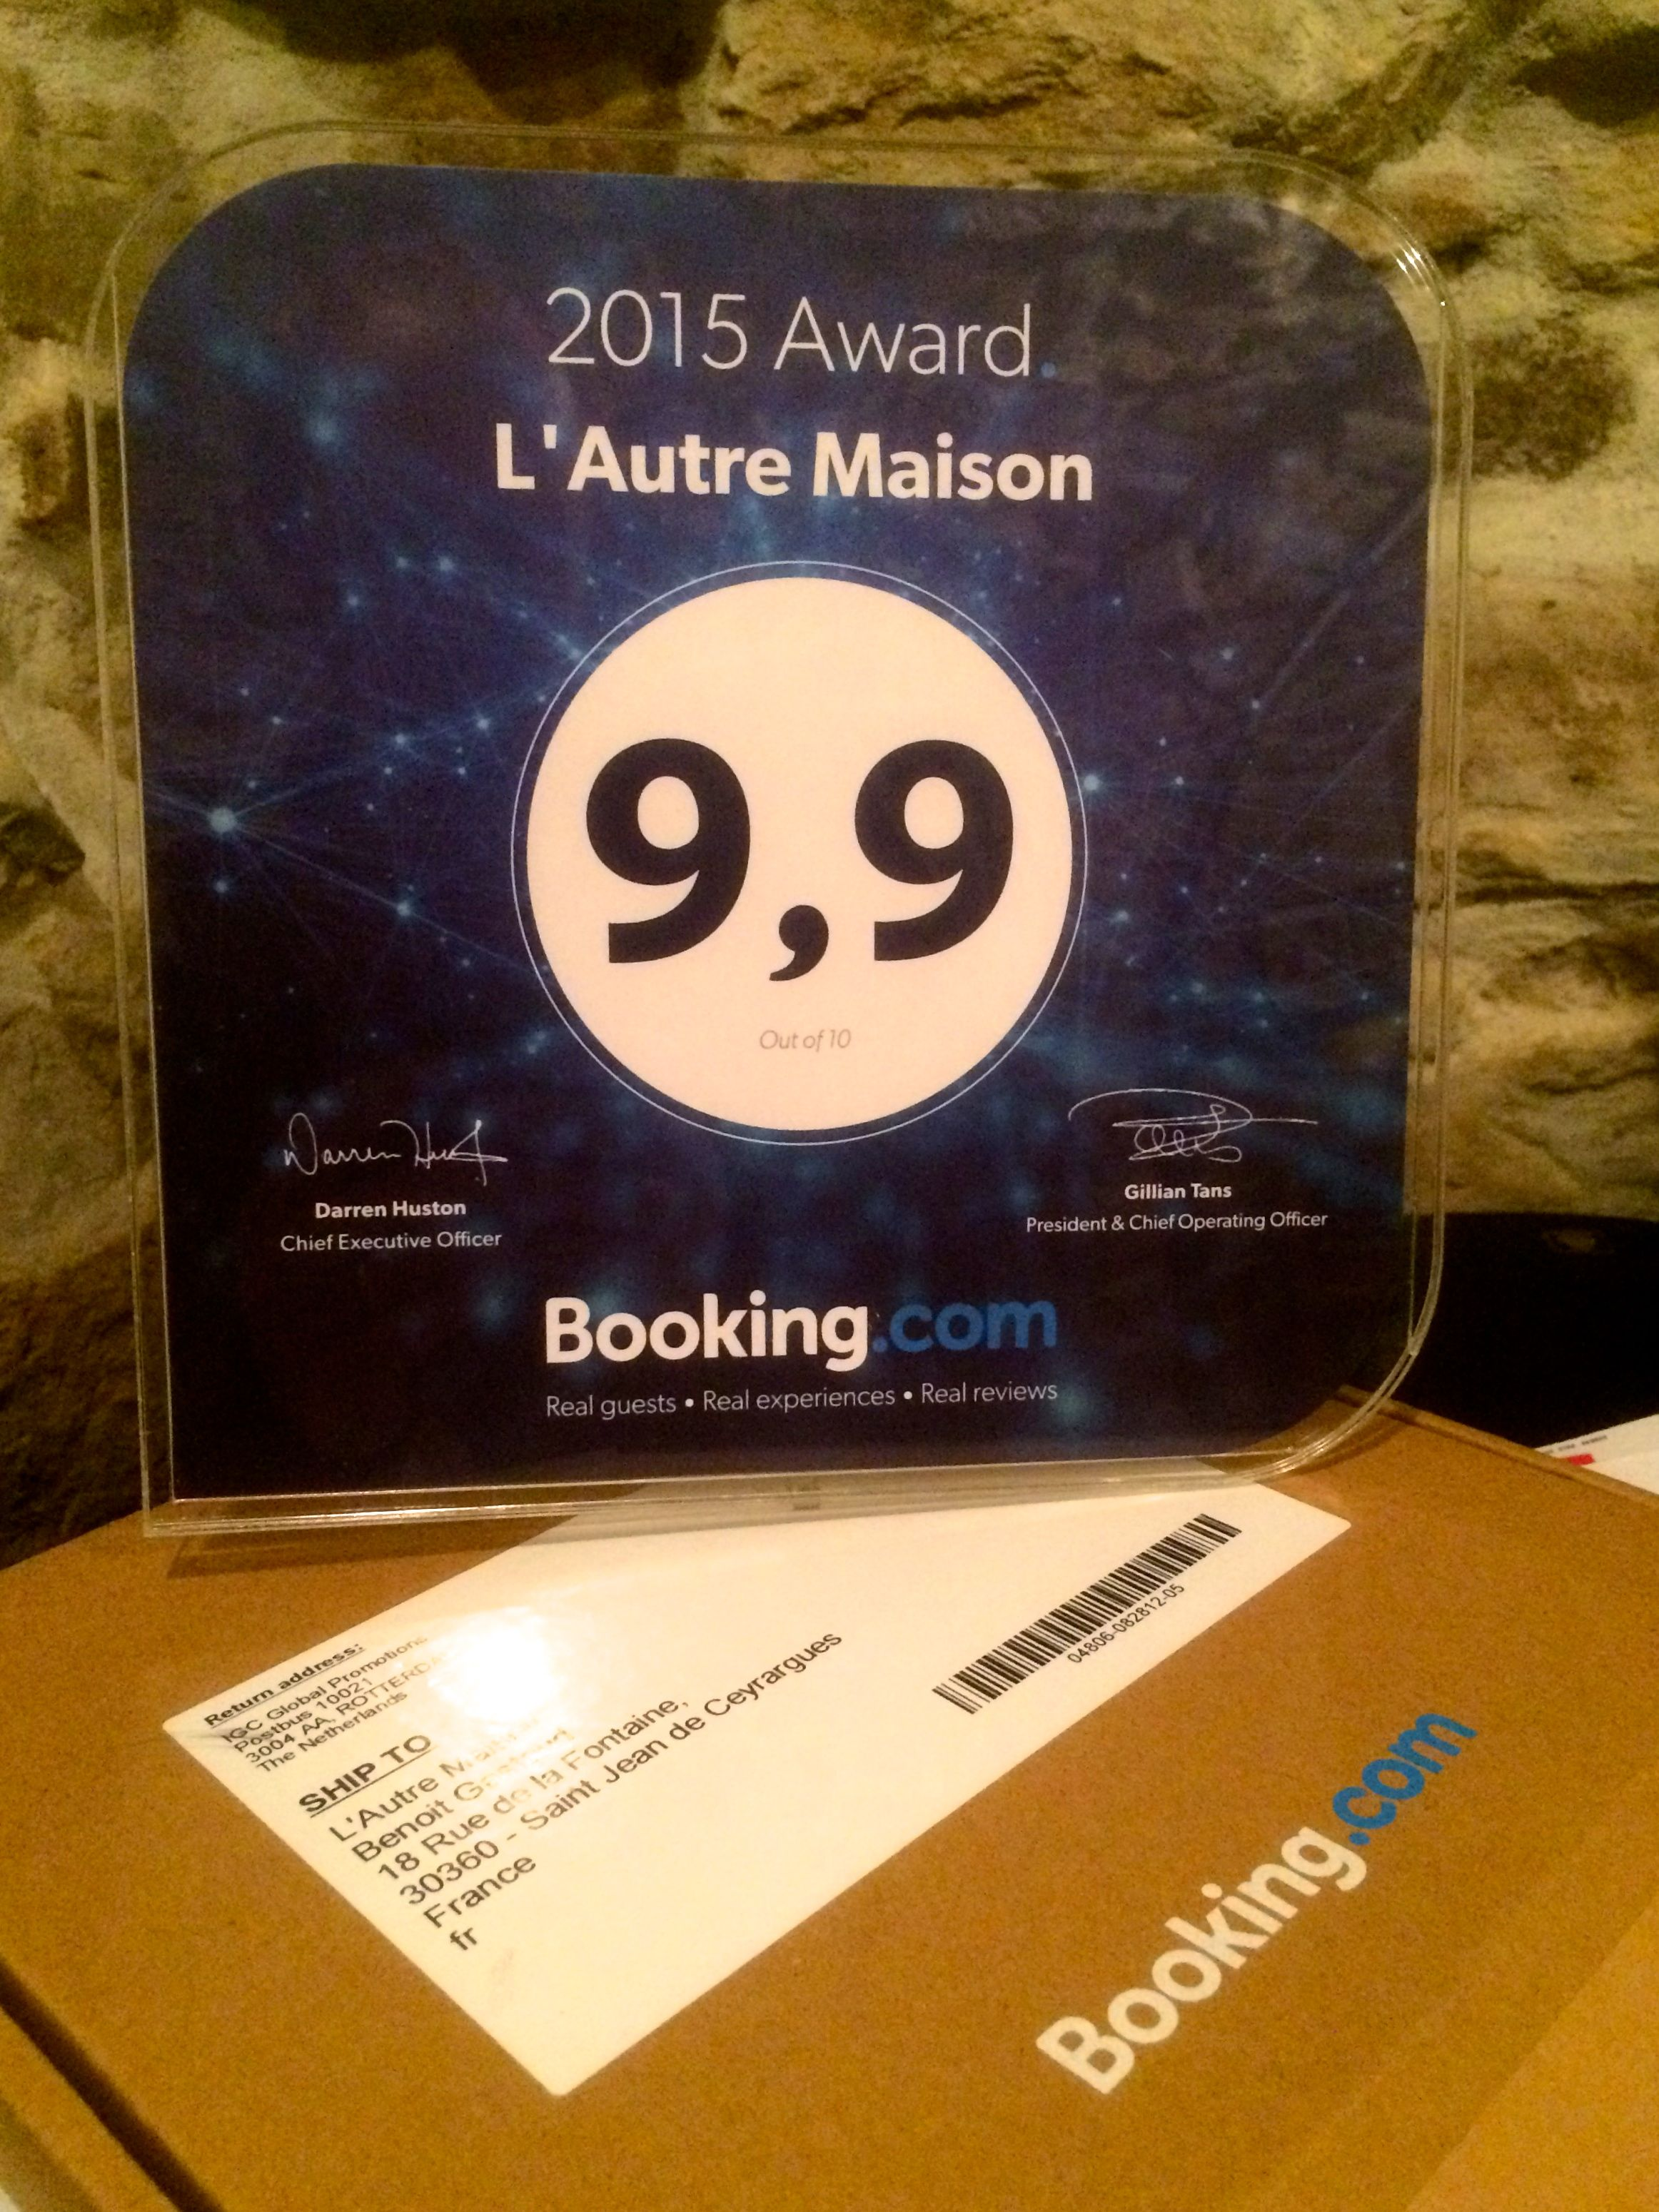 L'Autre Maison - Booking.com